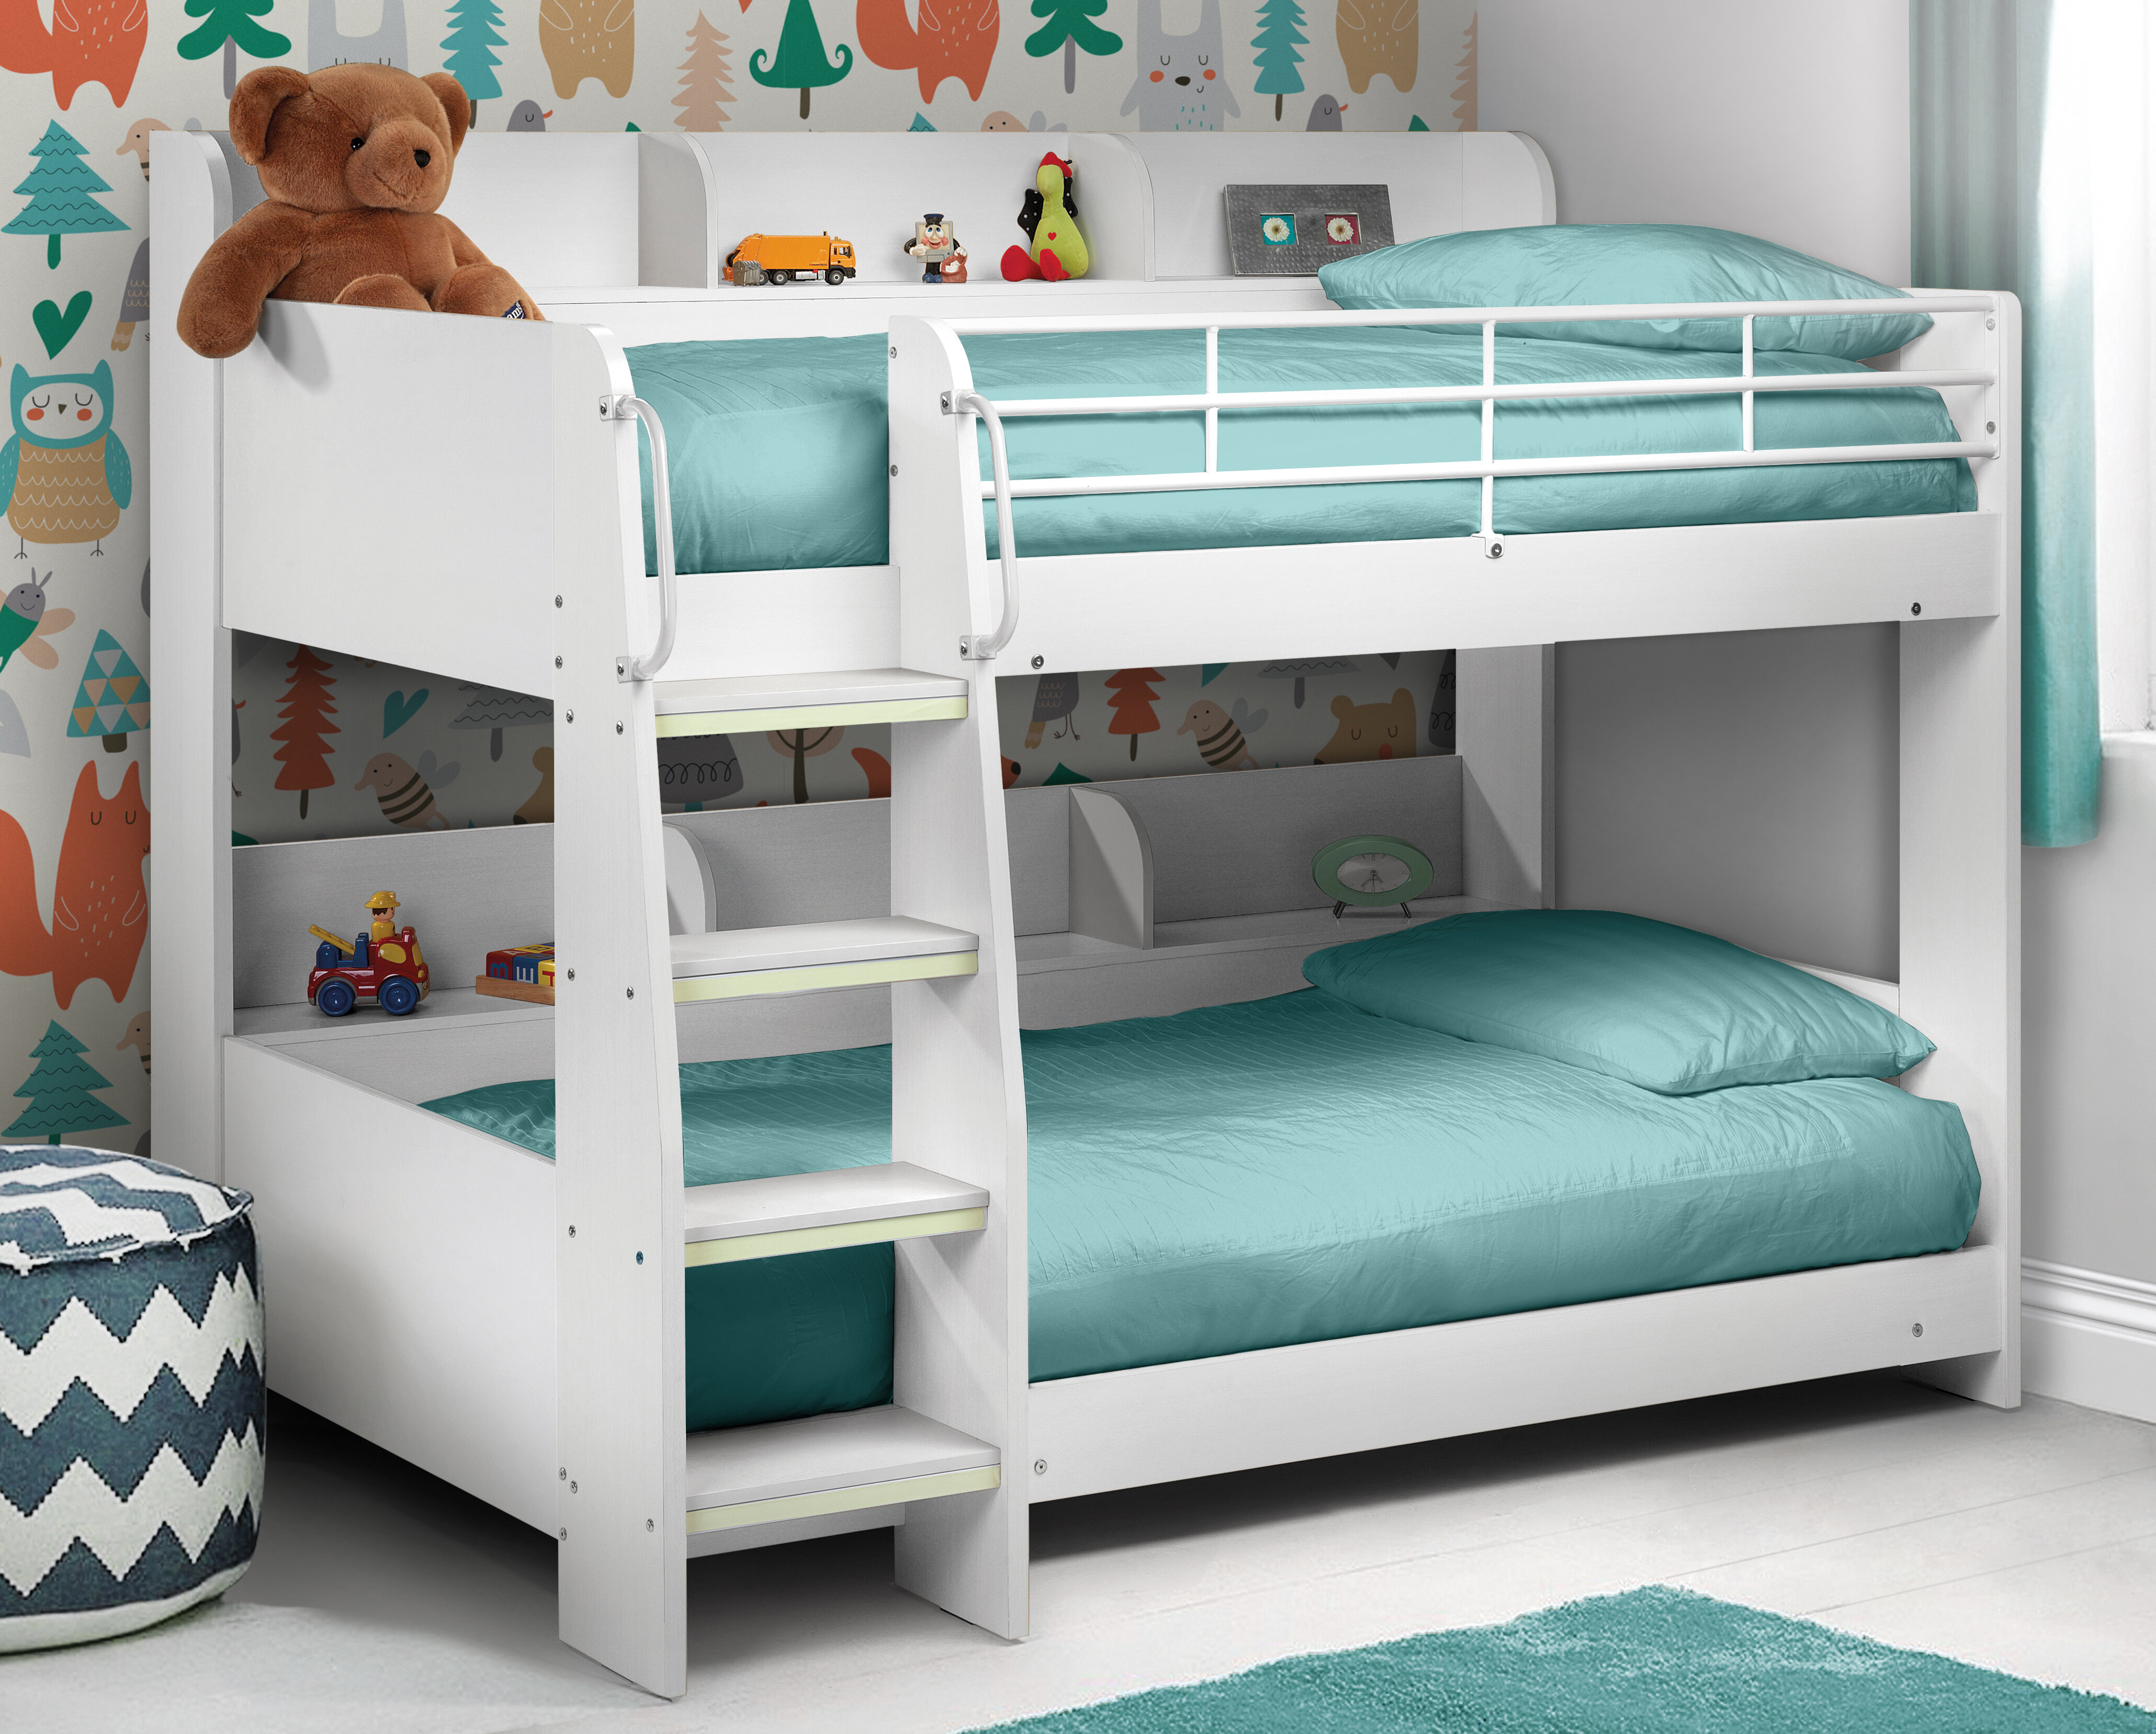 Etagenbett Wayfair : Just kids etagenbett kelly wayfair.de